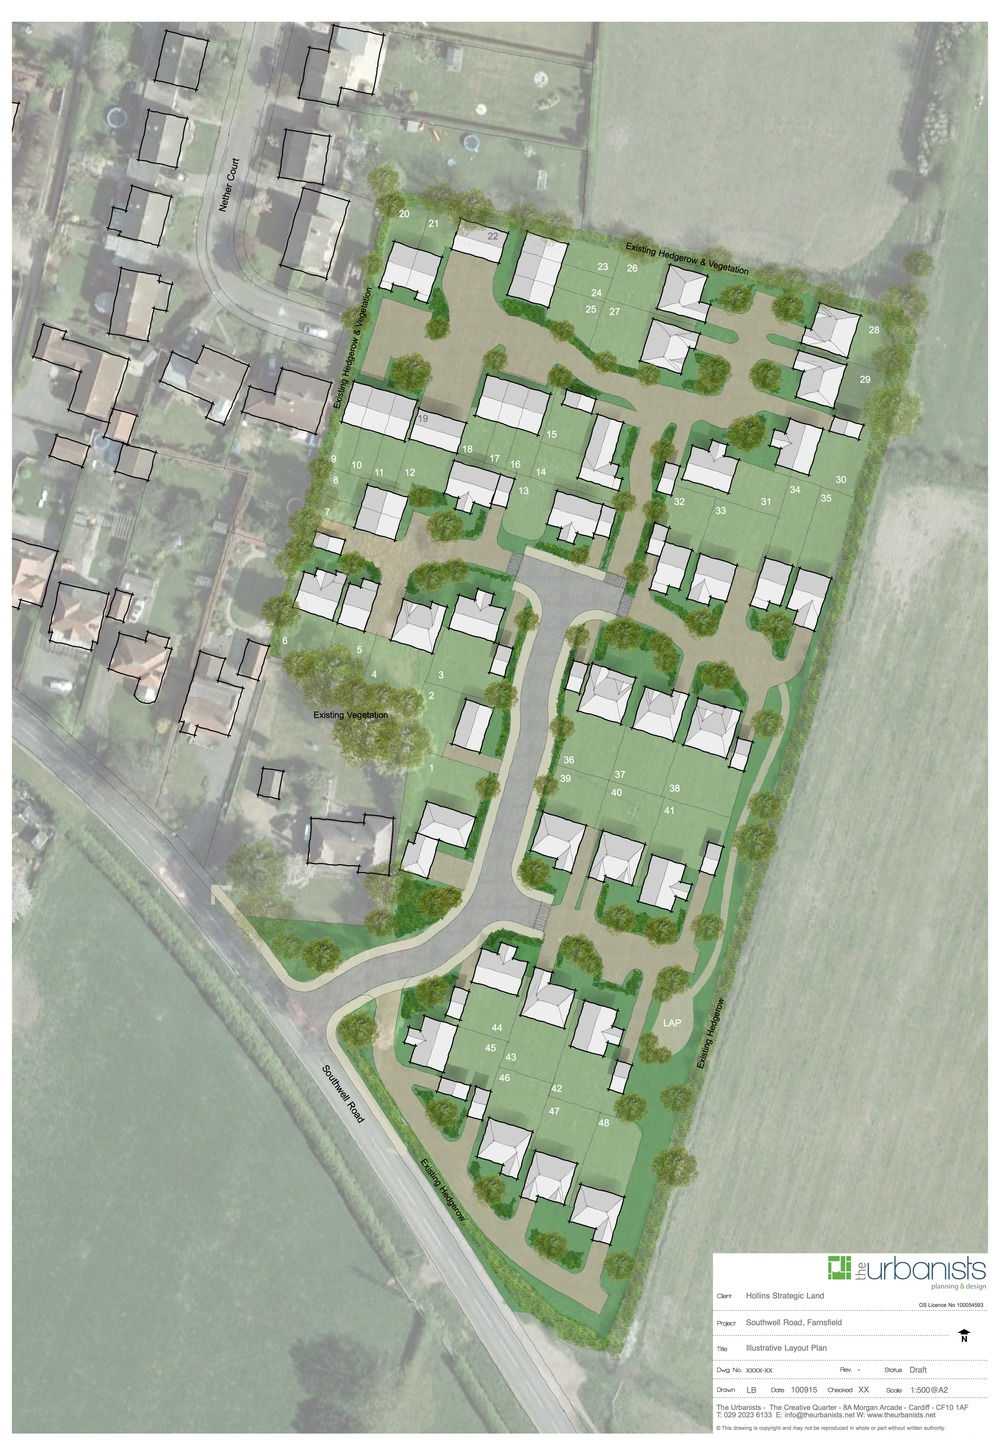 Proposed development of 48 dwellings on an edge of settlement site